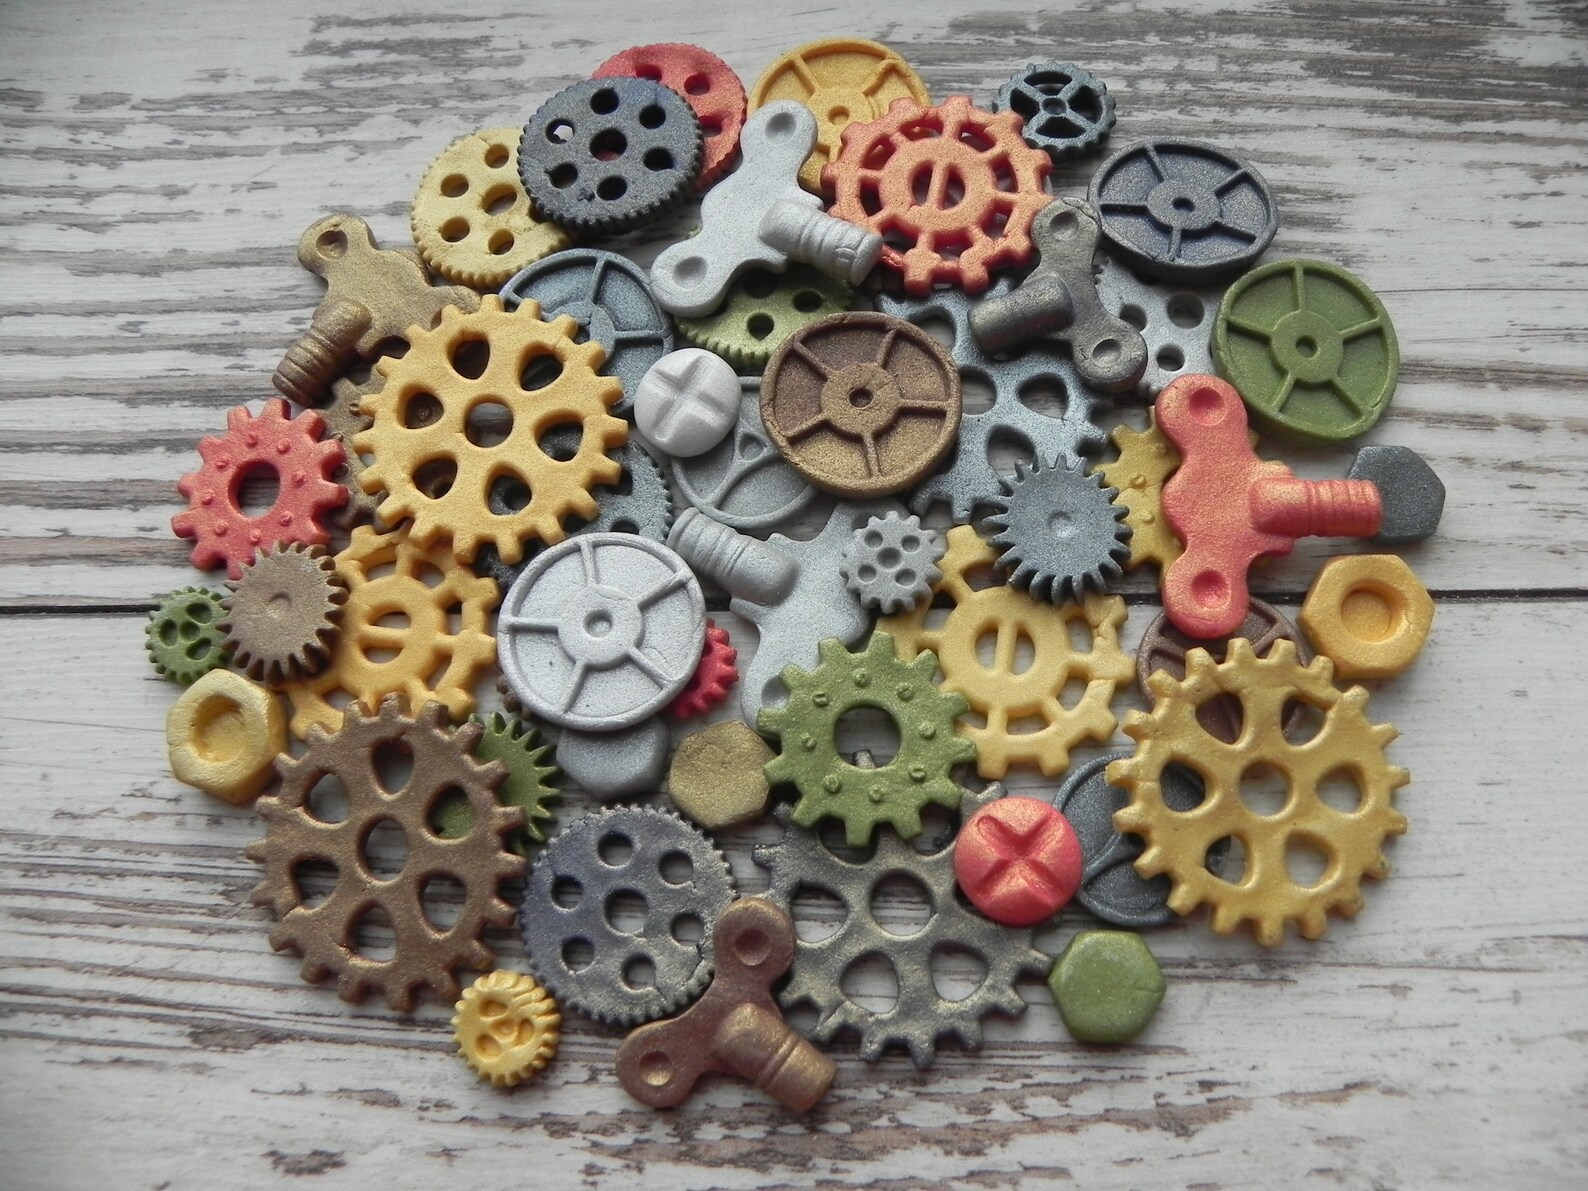 Edible Steampunk Gears & Ornaments for a Steampunk Birthday Party